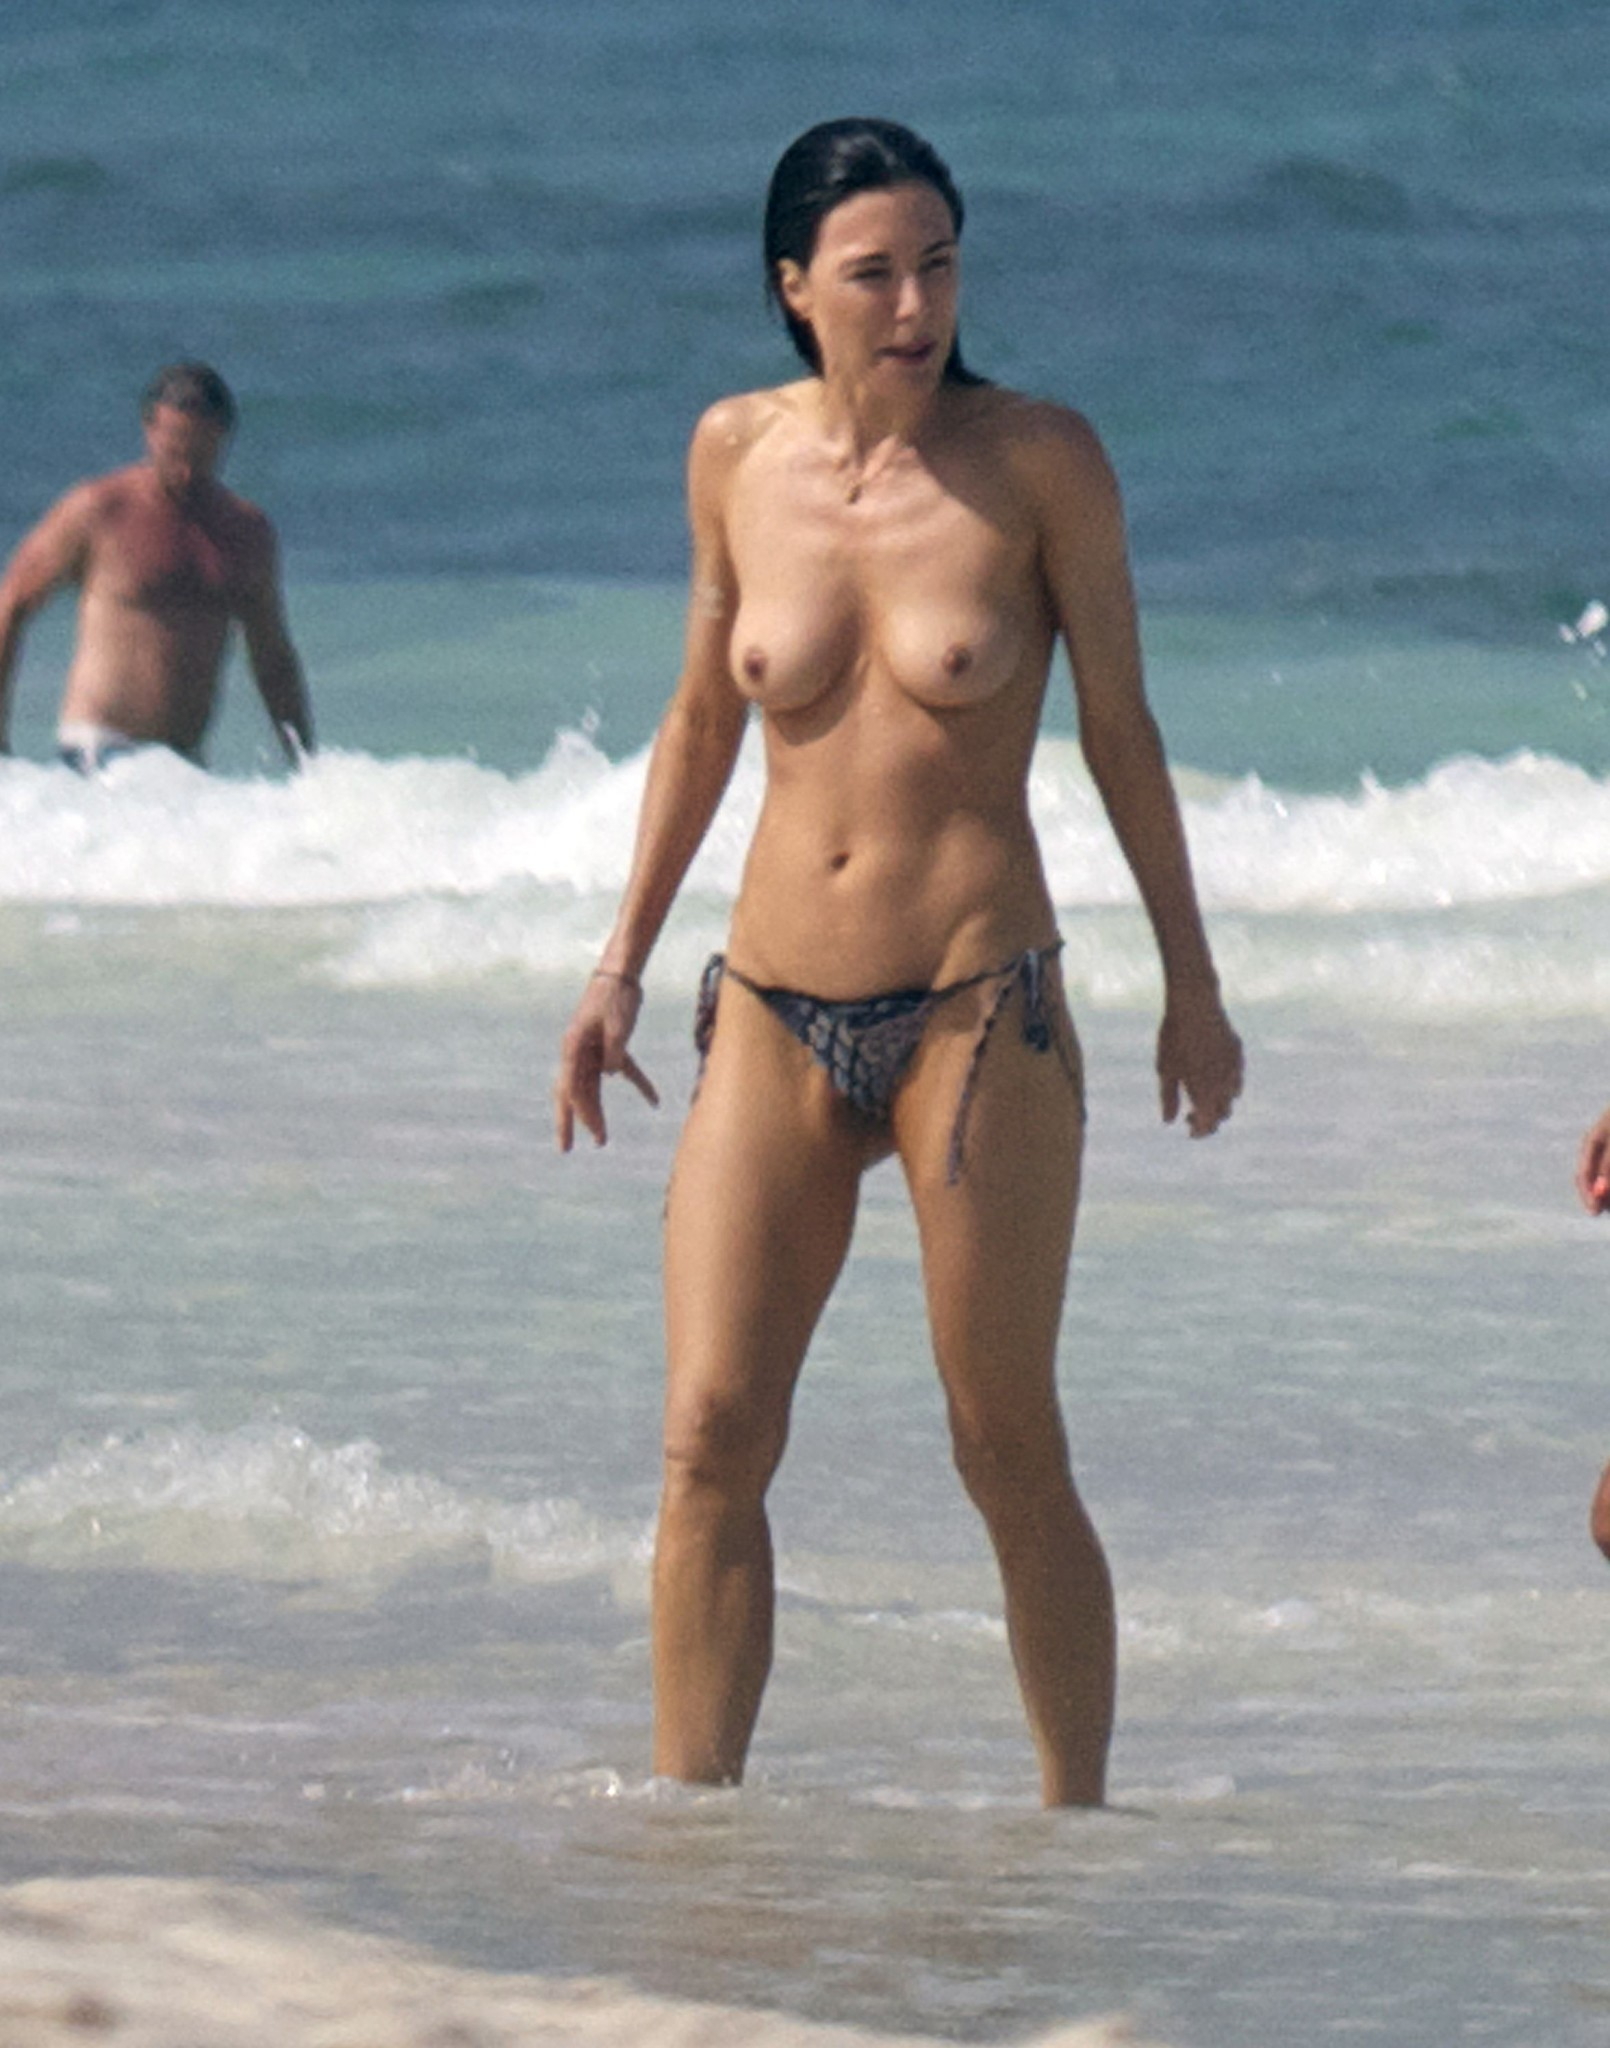 jaime-murray-topless-at-a-beach-in-mexico-29.jpg